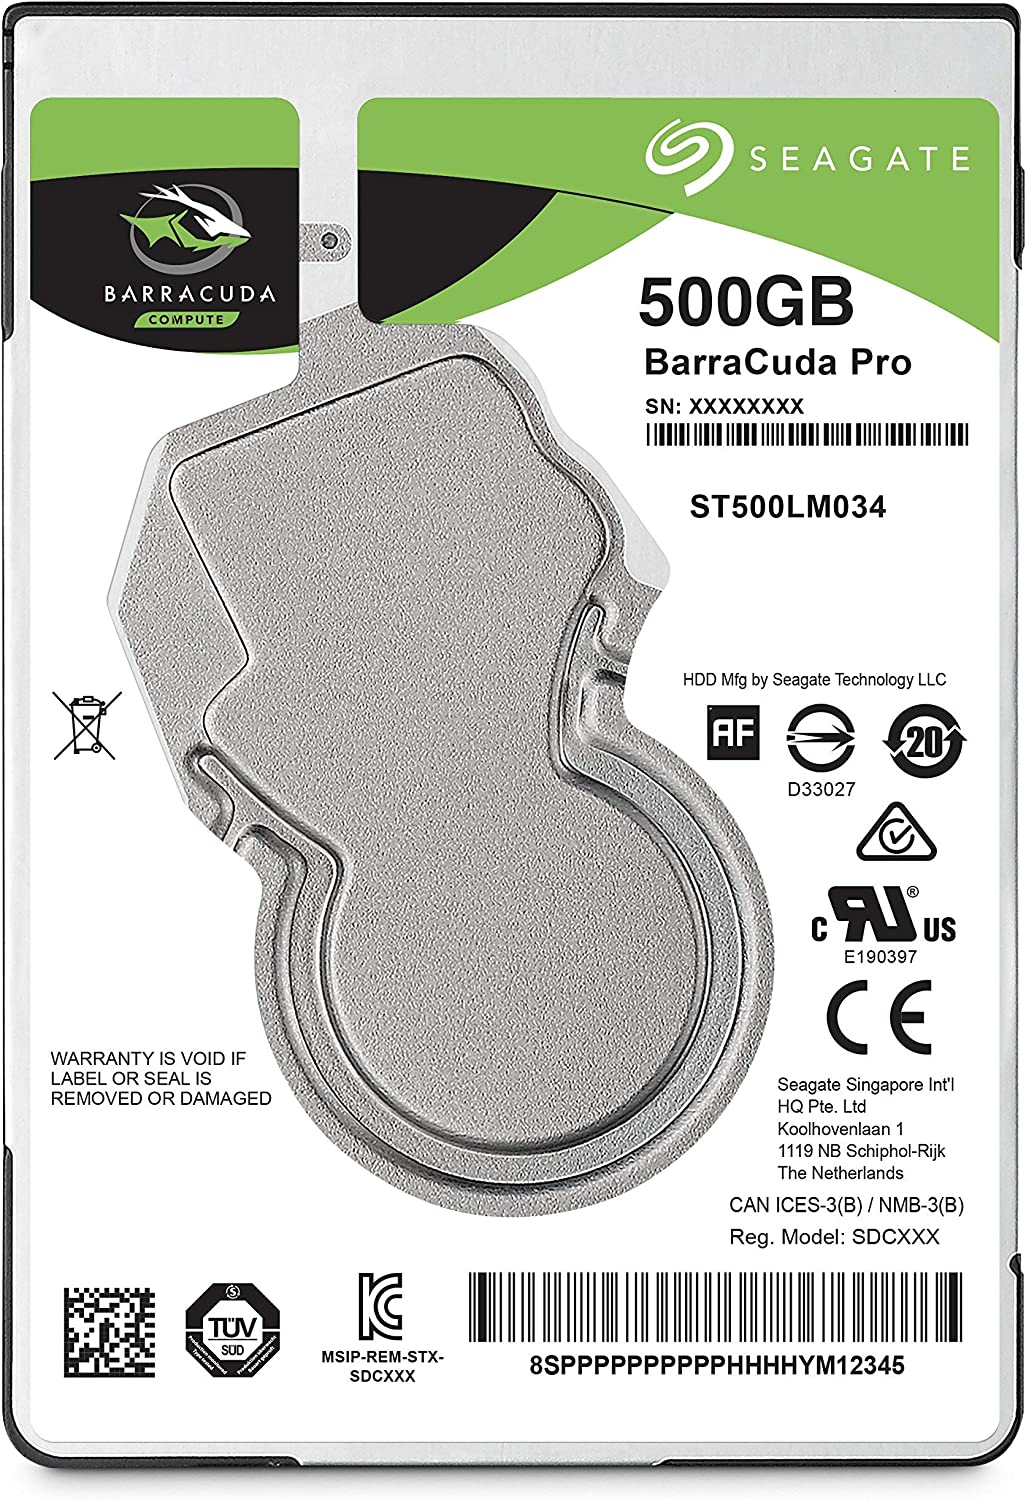 Seagate BarraCuda Pro 500GB Internal Hard Drive Performance HDD – 2.5 Inch SATA 6Gb/s 7200 RPM 128MB Cache for Computer Desktop PC Laptop, Data Recovery (ST500LM034) (Renewed)